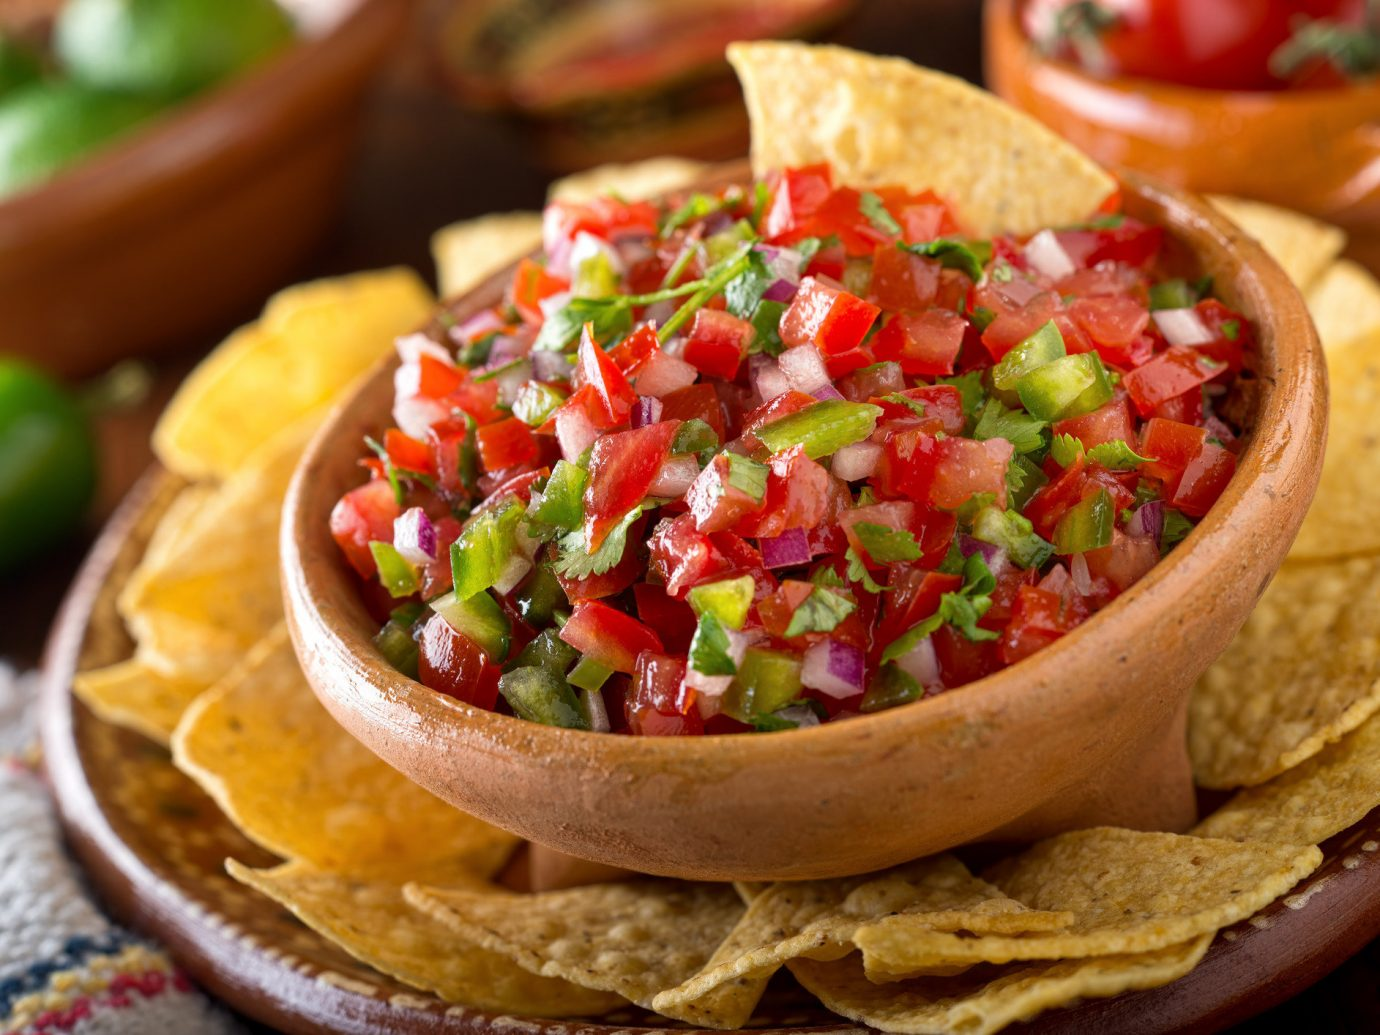 Food + Drink food dish tostada cuisine tortilla chip guacamole produce bruschetta salsa sauce land plant pico de gallo vegetable dip taco flowering plant condiment bread meal toppings